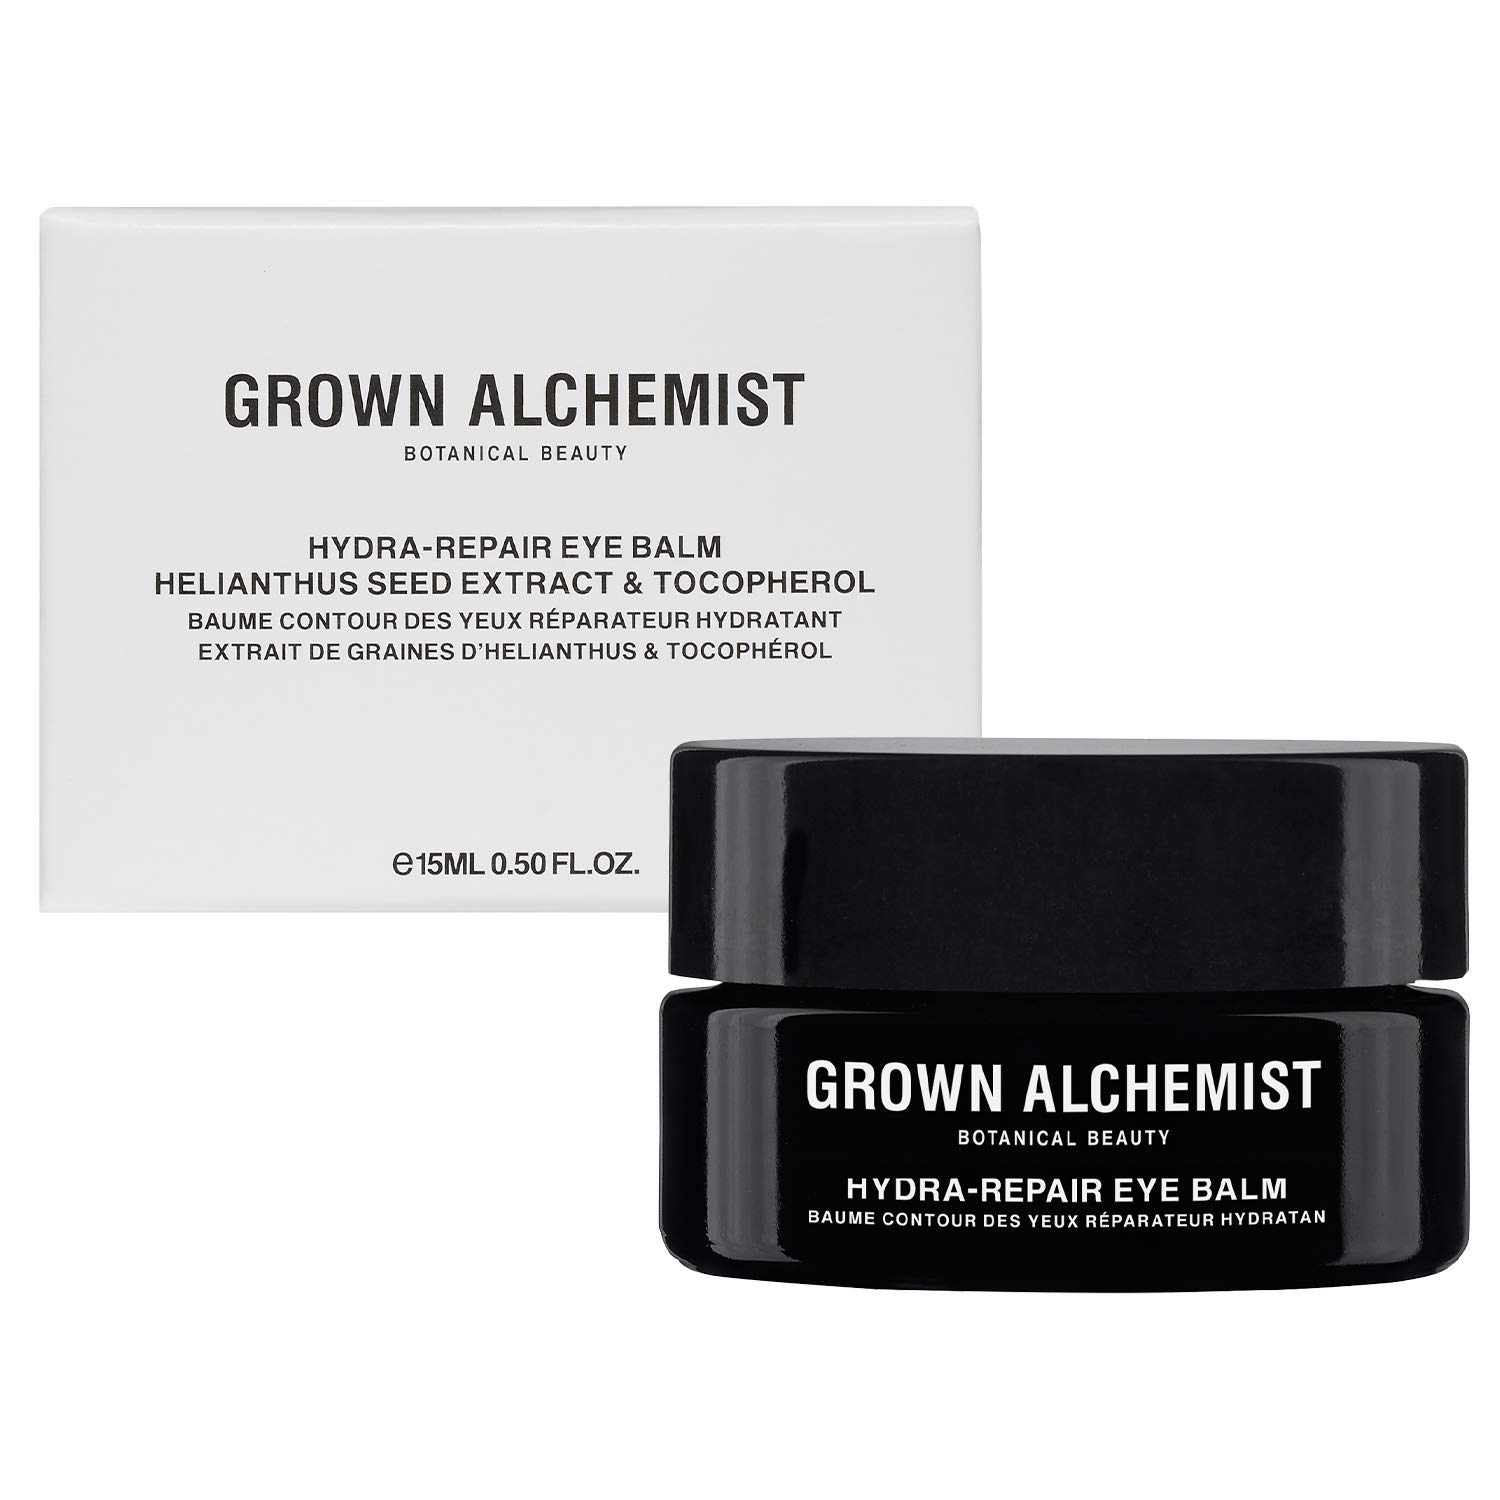 Grown Alchemist Hydra-Repair Eye Balm - Helianthus Seed Extract & Tocopherol - Made with Organic Ingredients (15ml / 0.5oz)